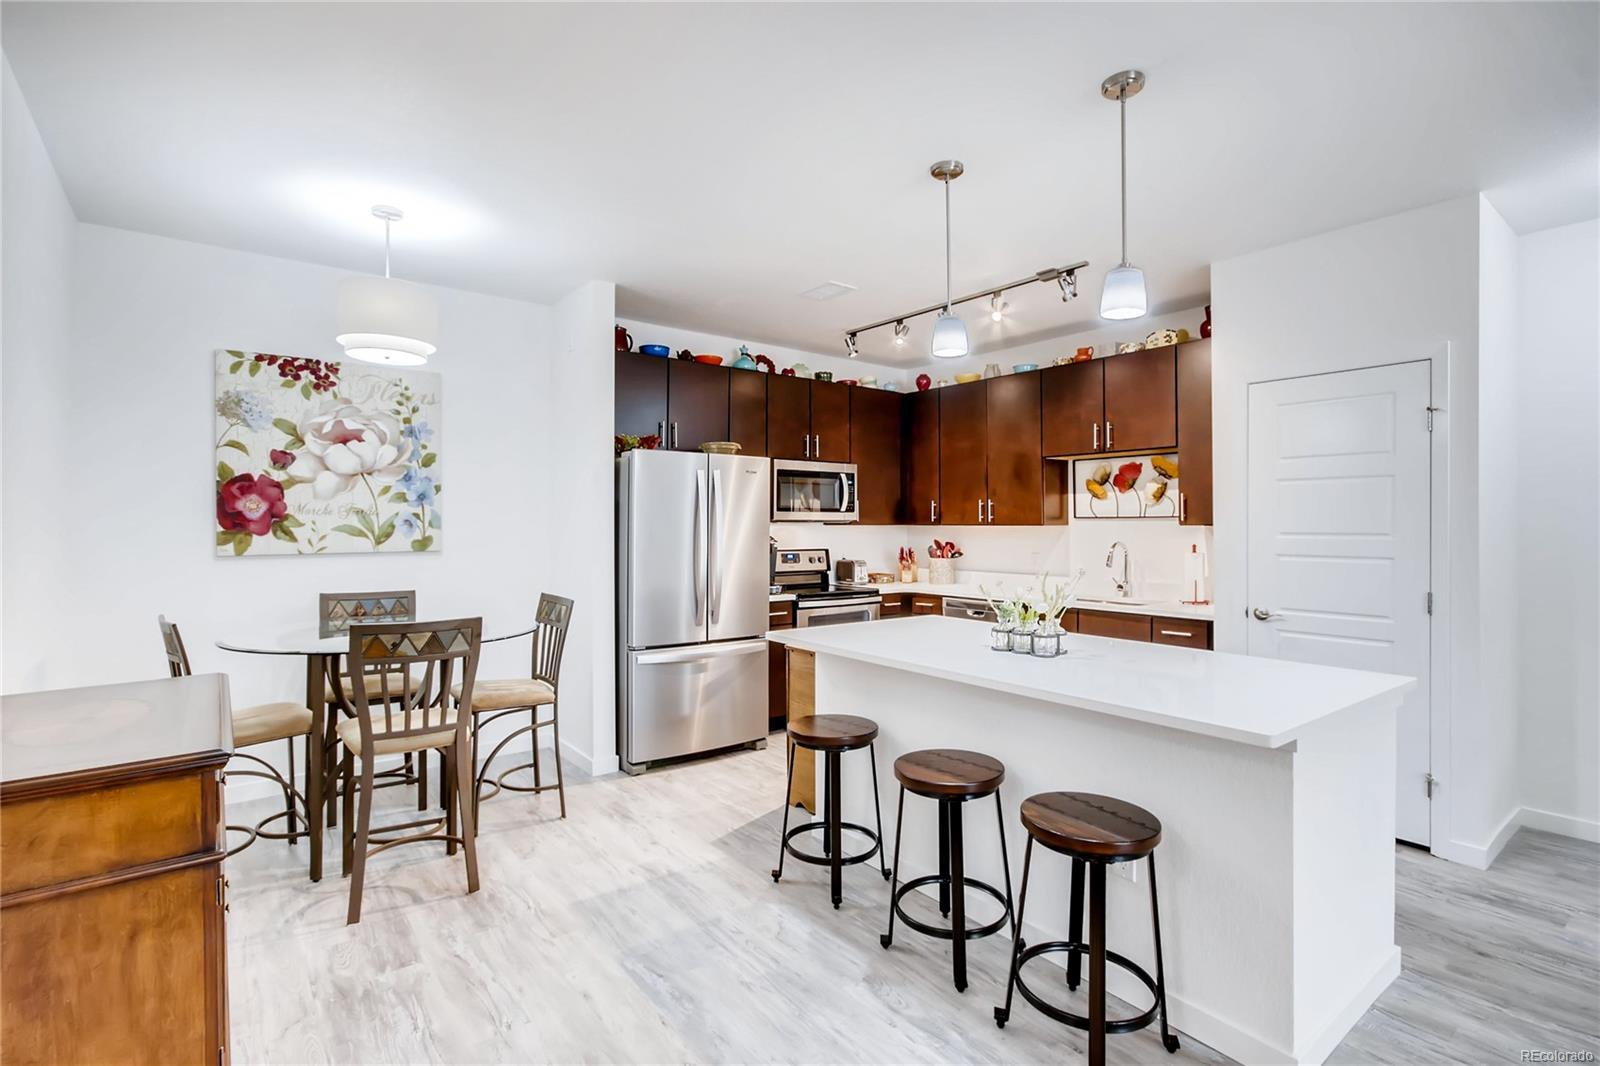 BEAUTIFUL CONTEM,PORARY KITCHEN WITH ISLAND, OPENING ONTO DINING ROOM